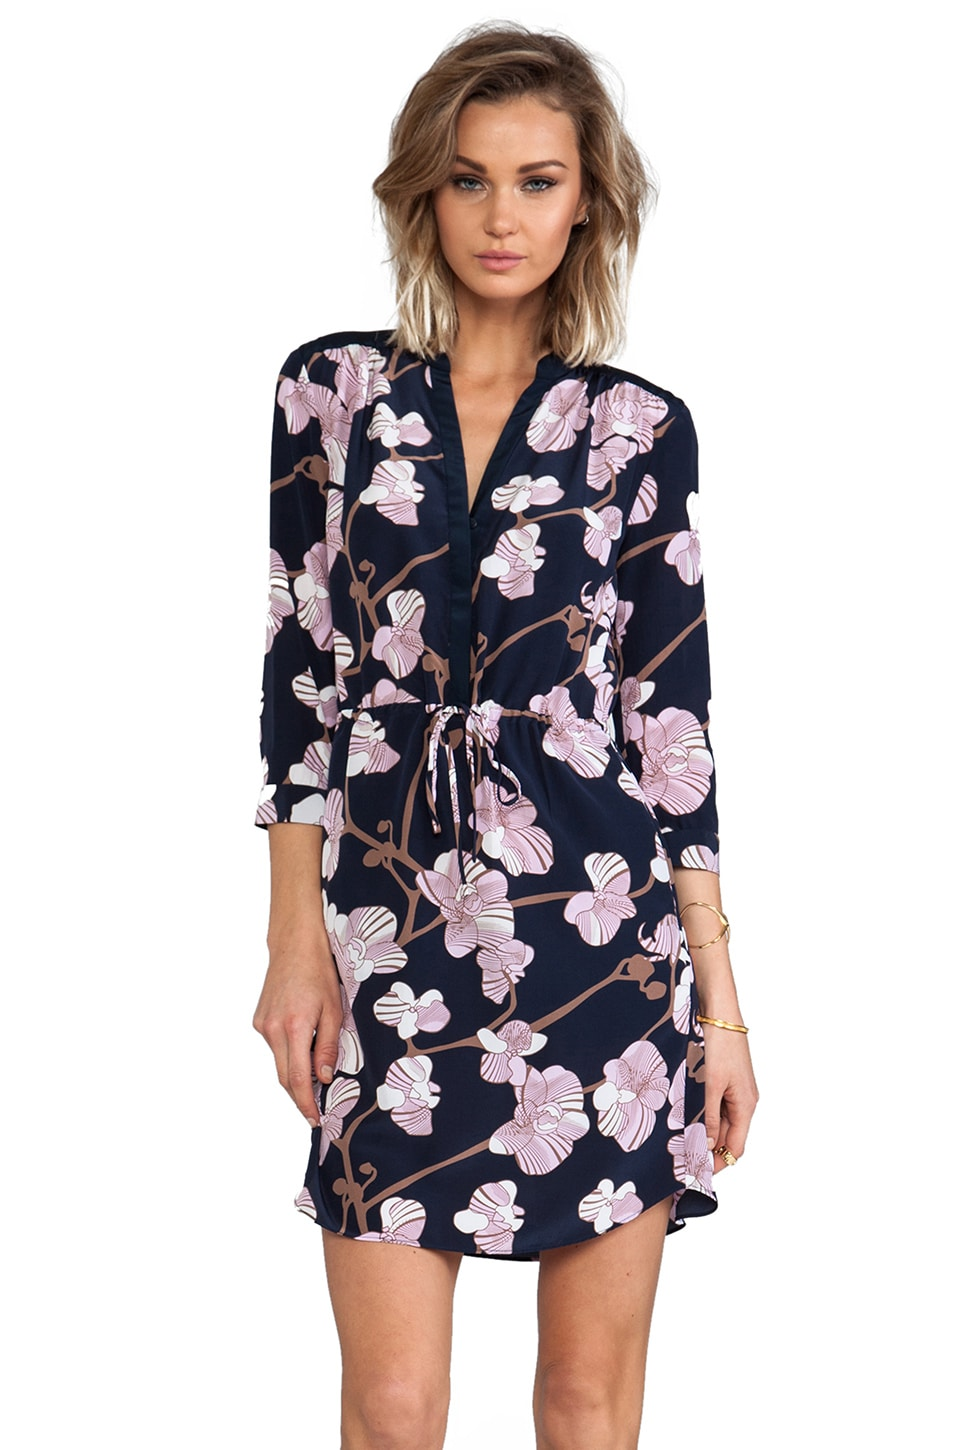 Diane von Furstenberg Freya Dress in Simple Orchid